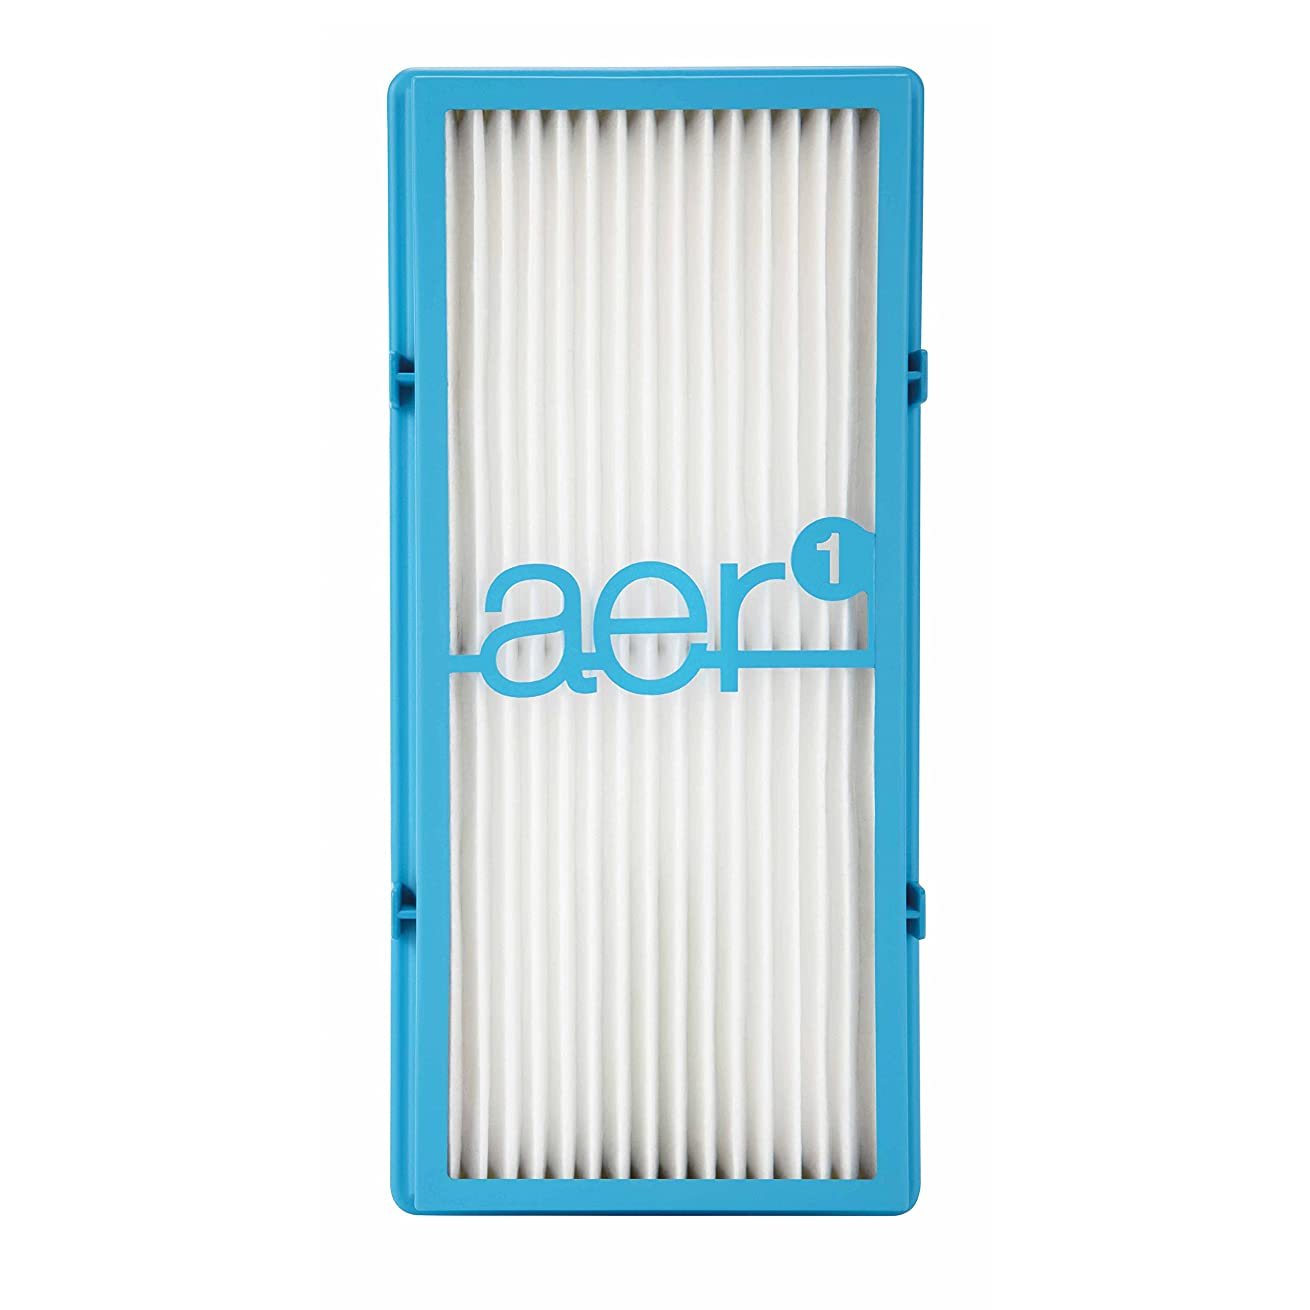 Holmes Air Filter | AER1 Total HEPA Type Filter, HAPF30AT